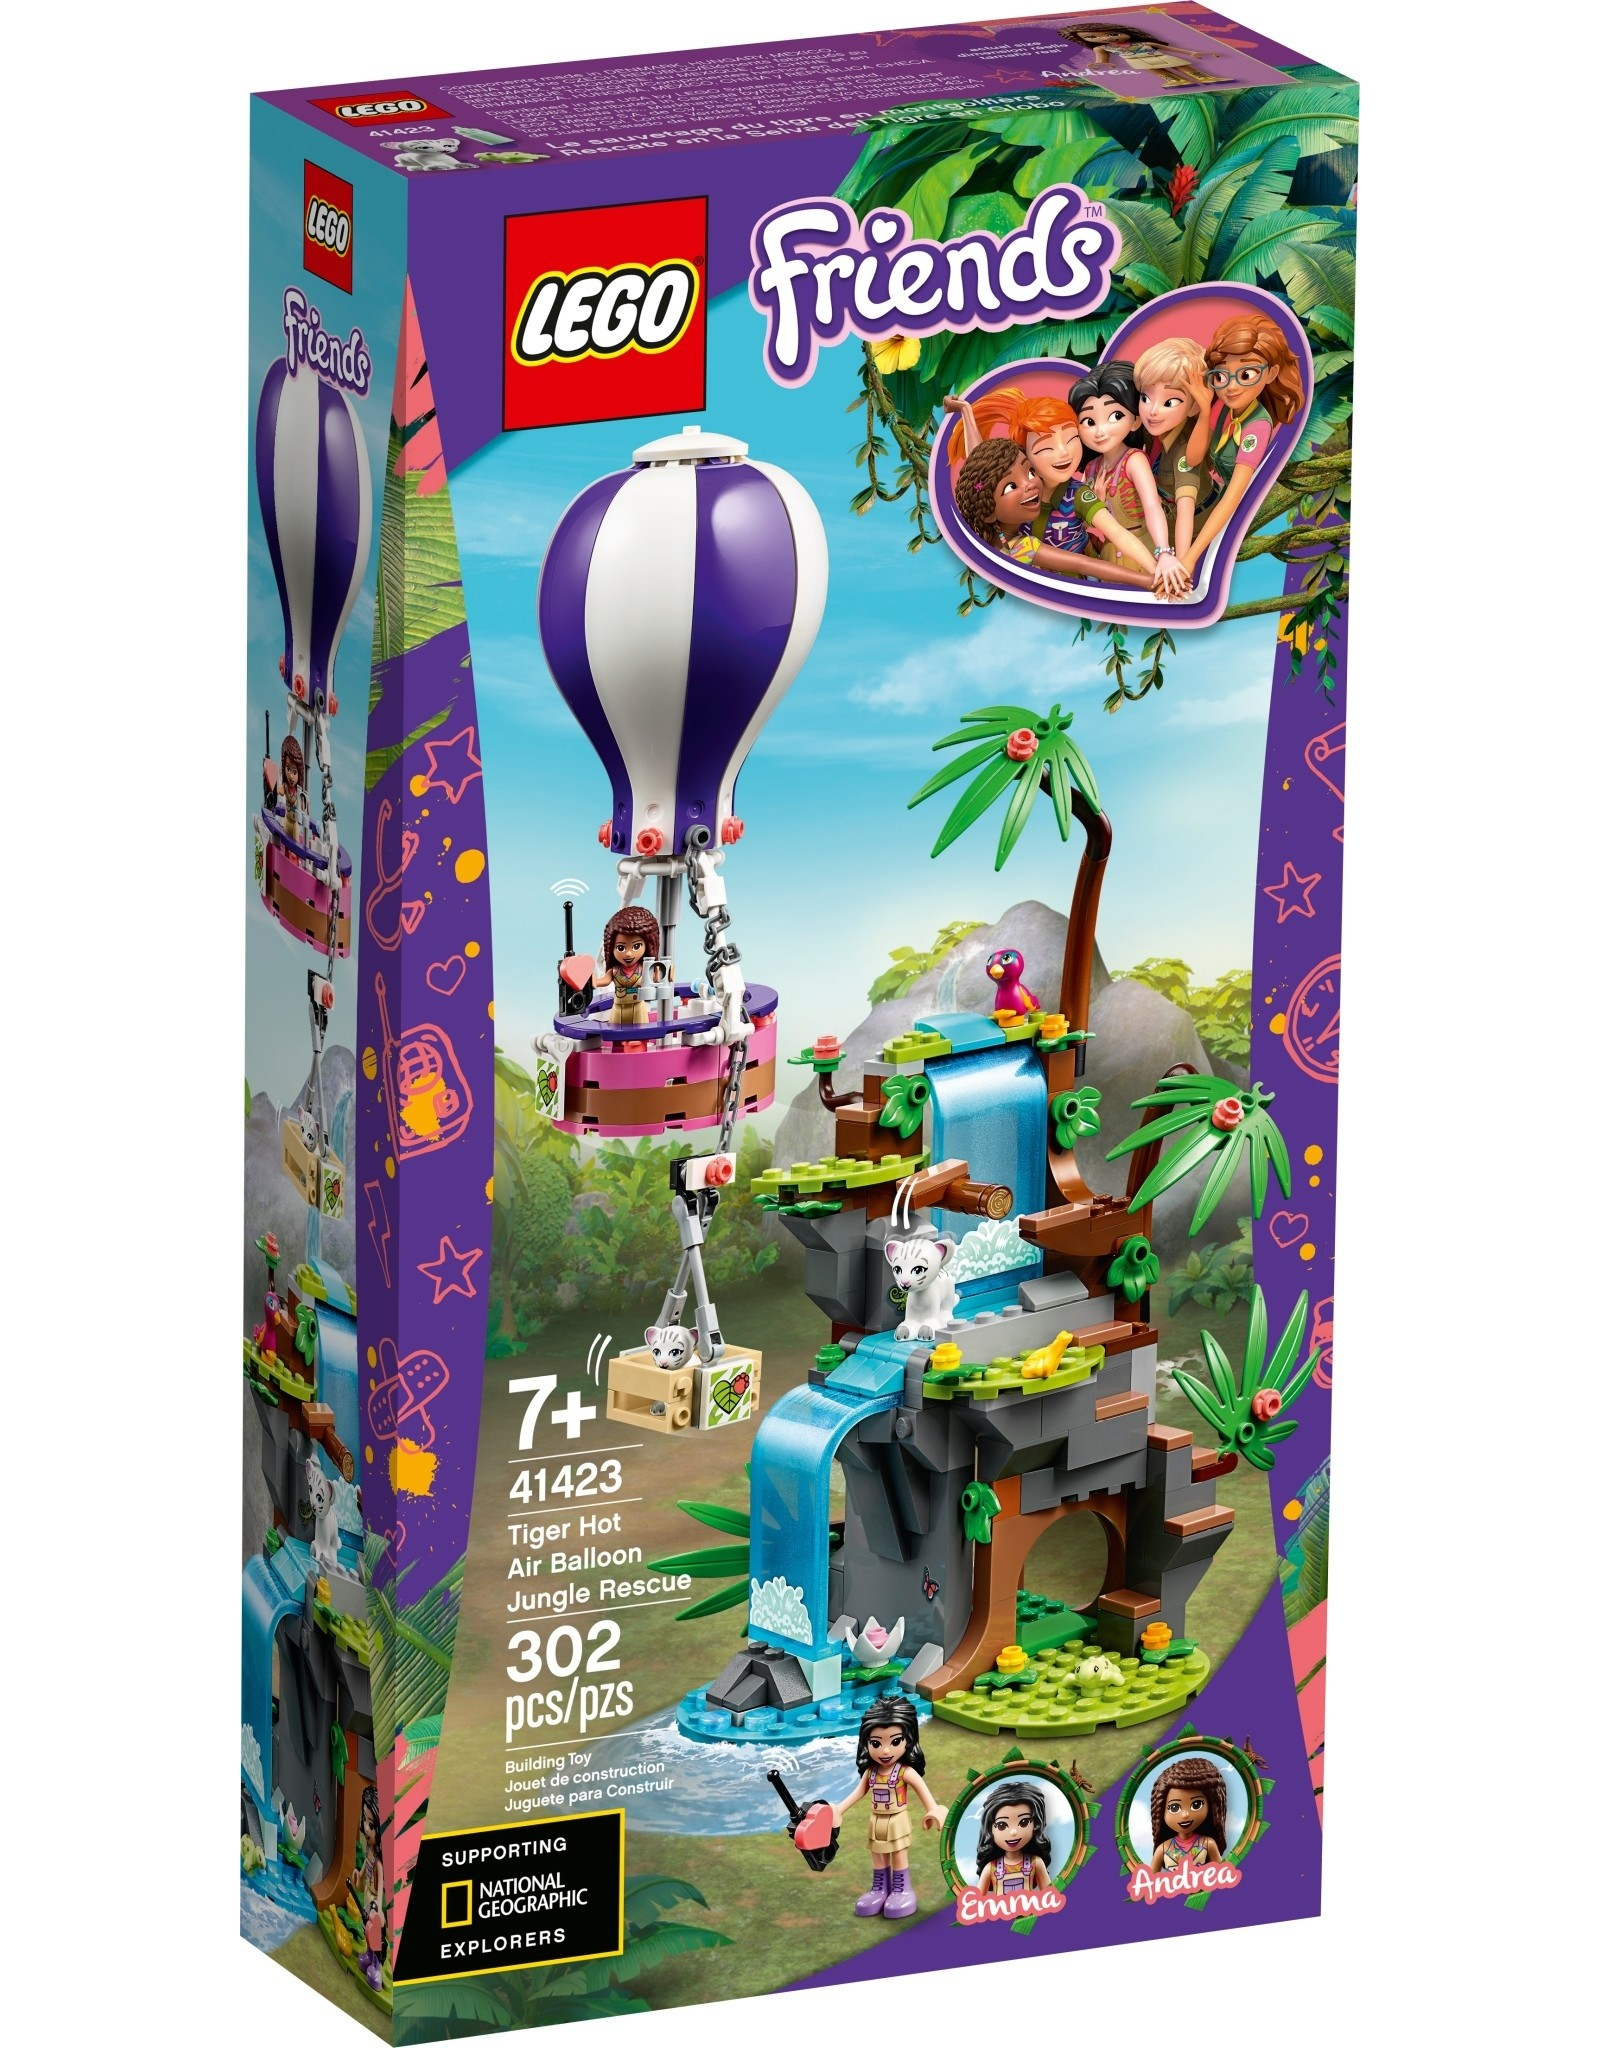 LEGO LEGO Friends Tiger Hot Air Balloon Jungle Rescue